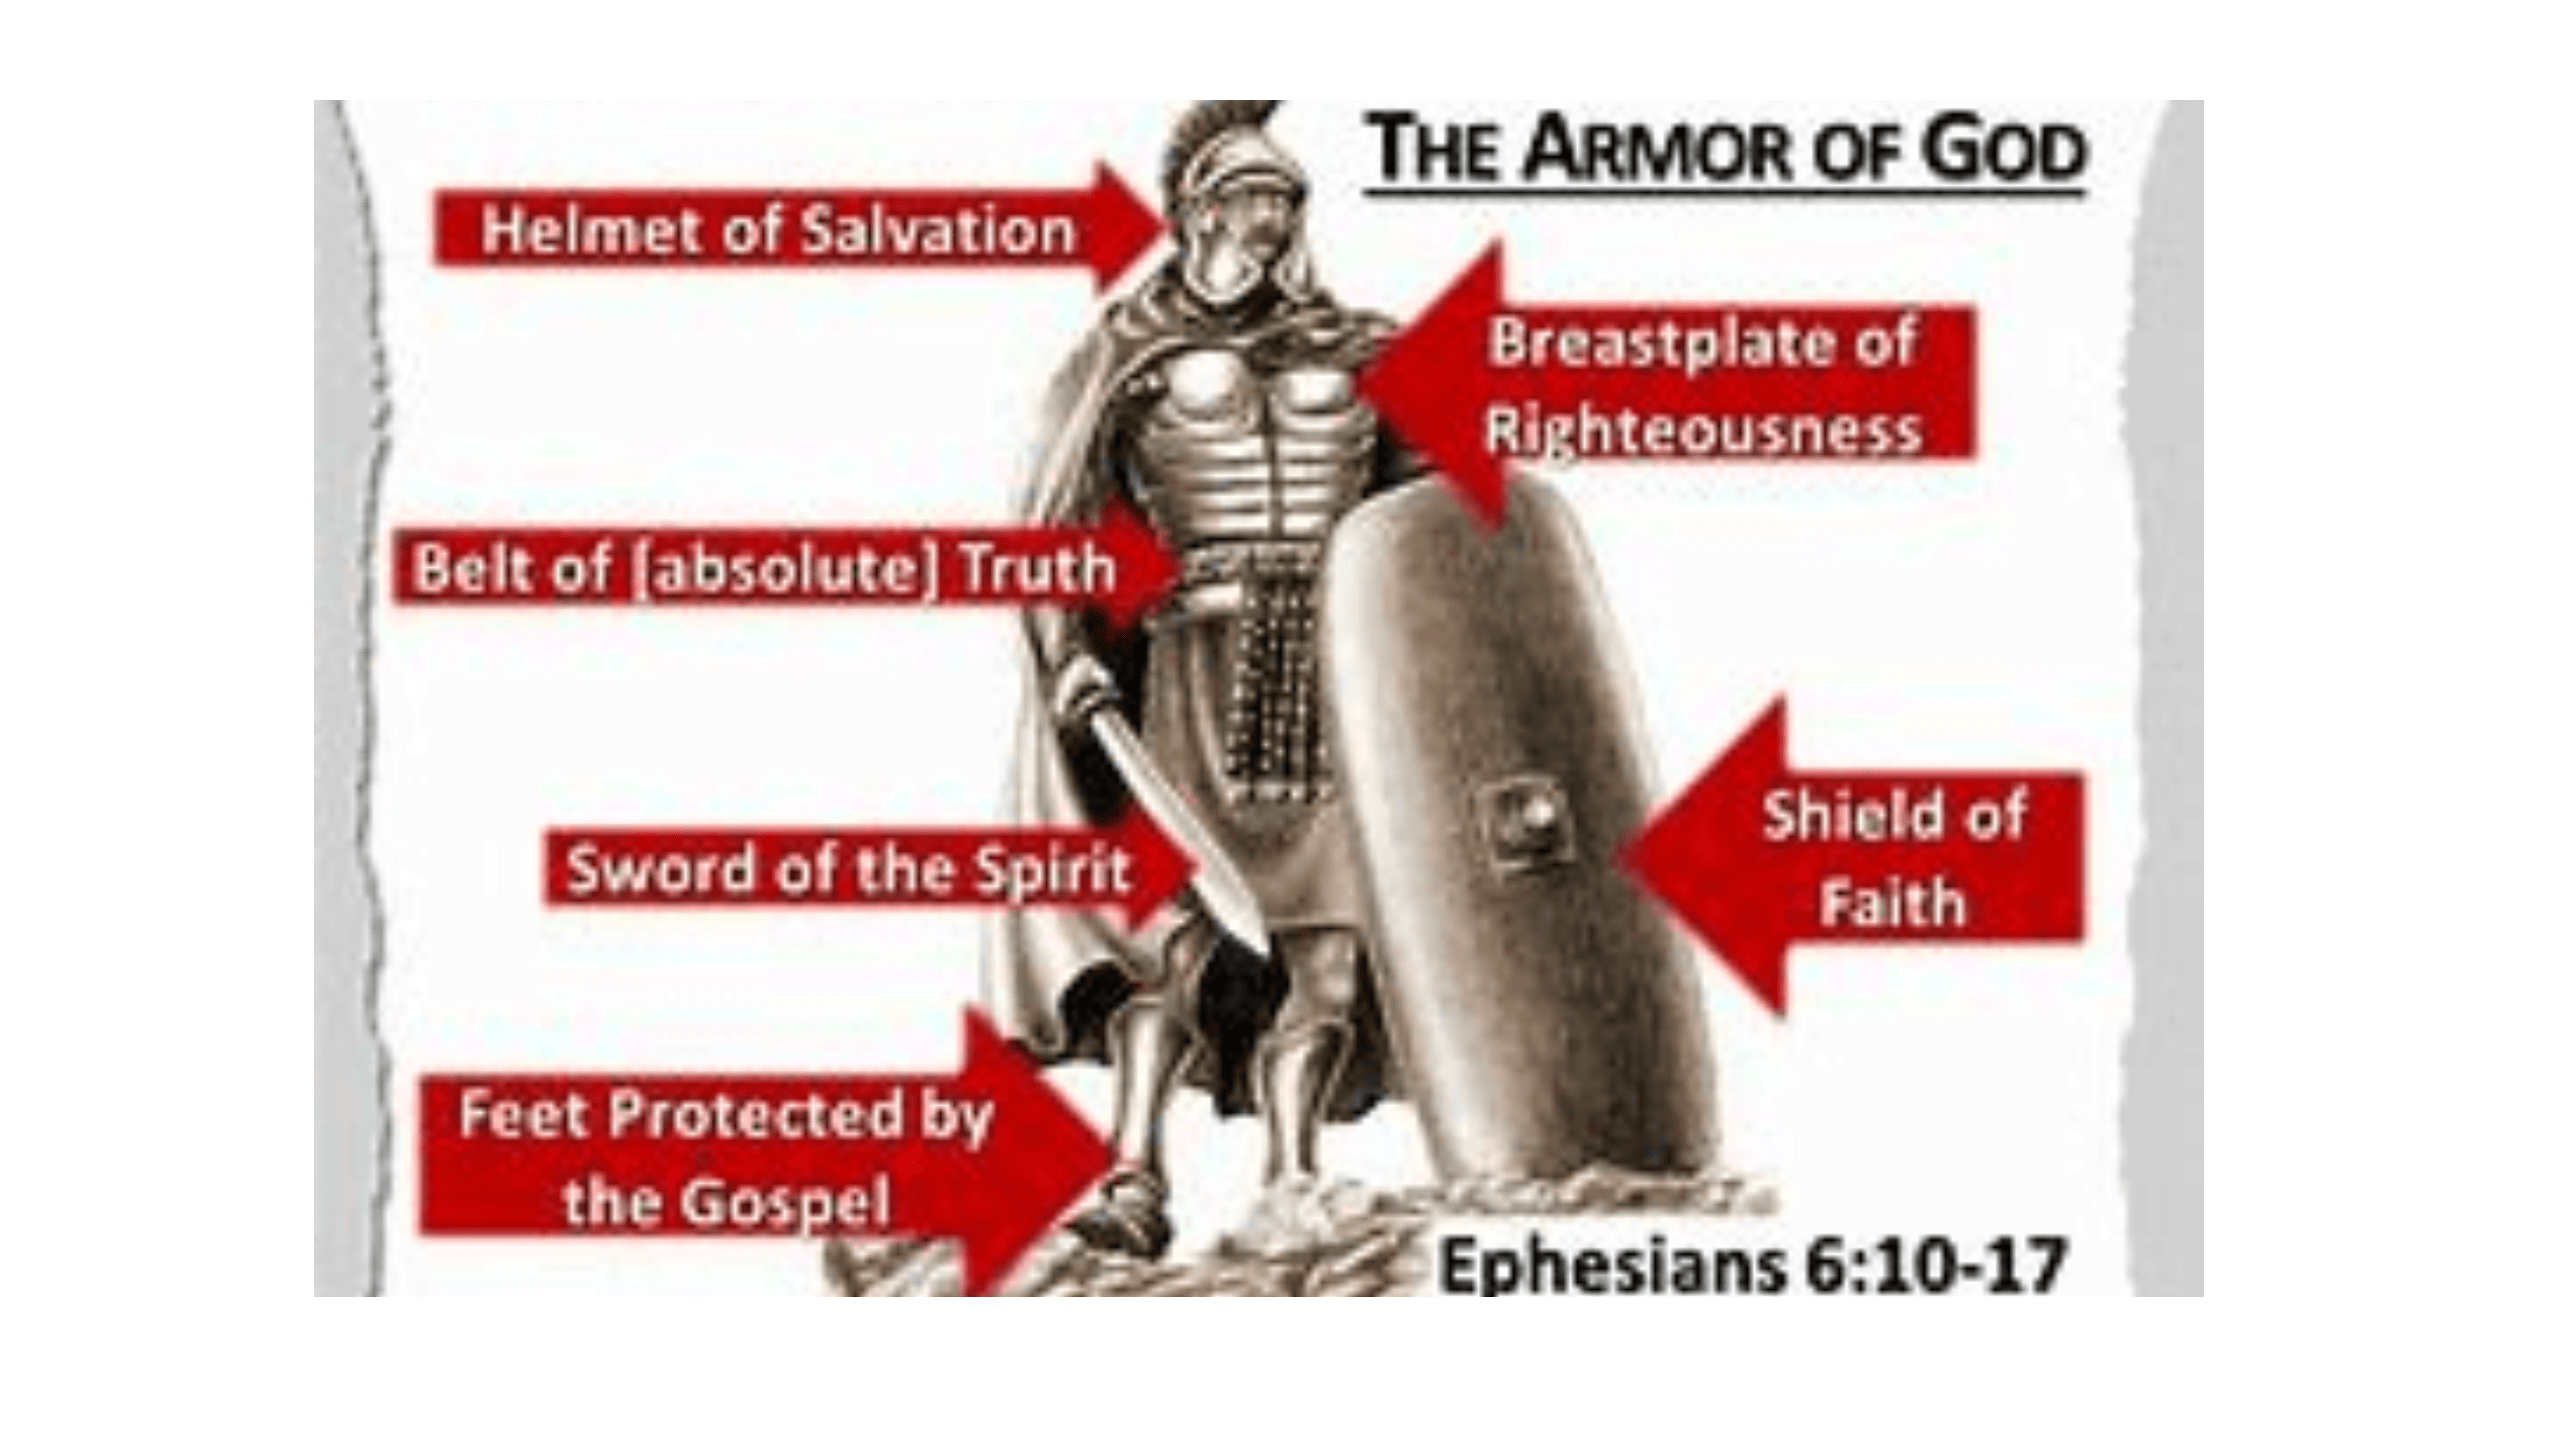 Armor Of God Image Customize Download It For Free 216547